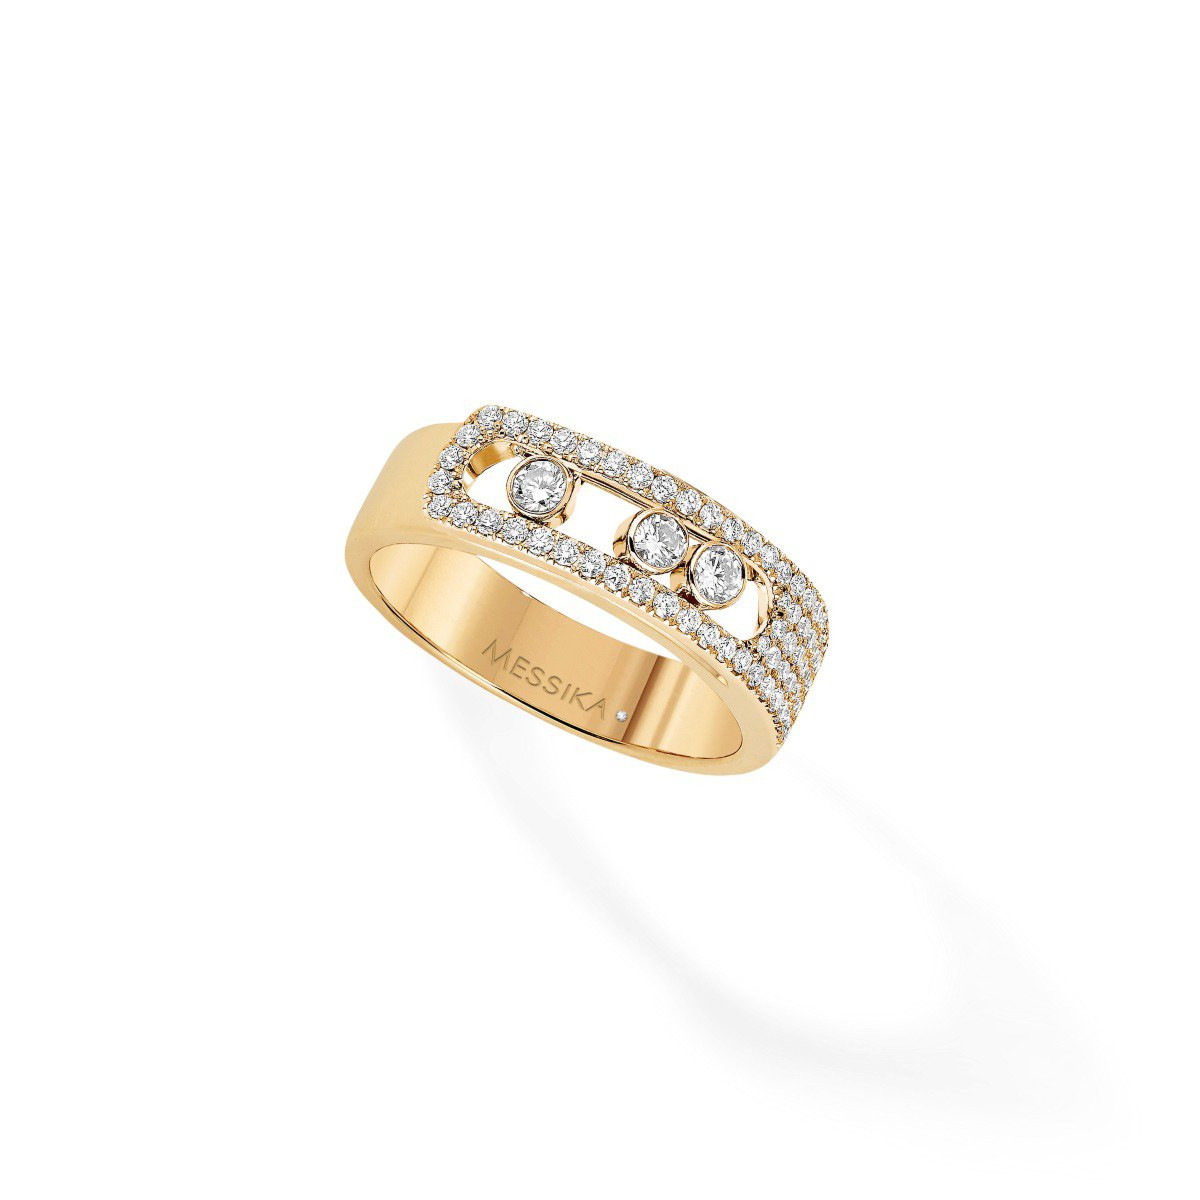 Messika Move Noa Pavé Diamond Cage Band Ring in 18K Yellow Gold